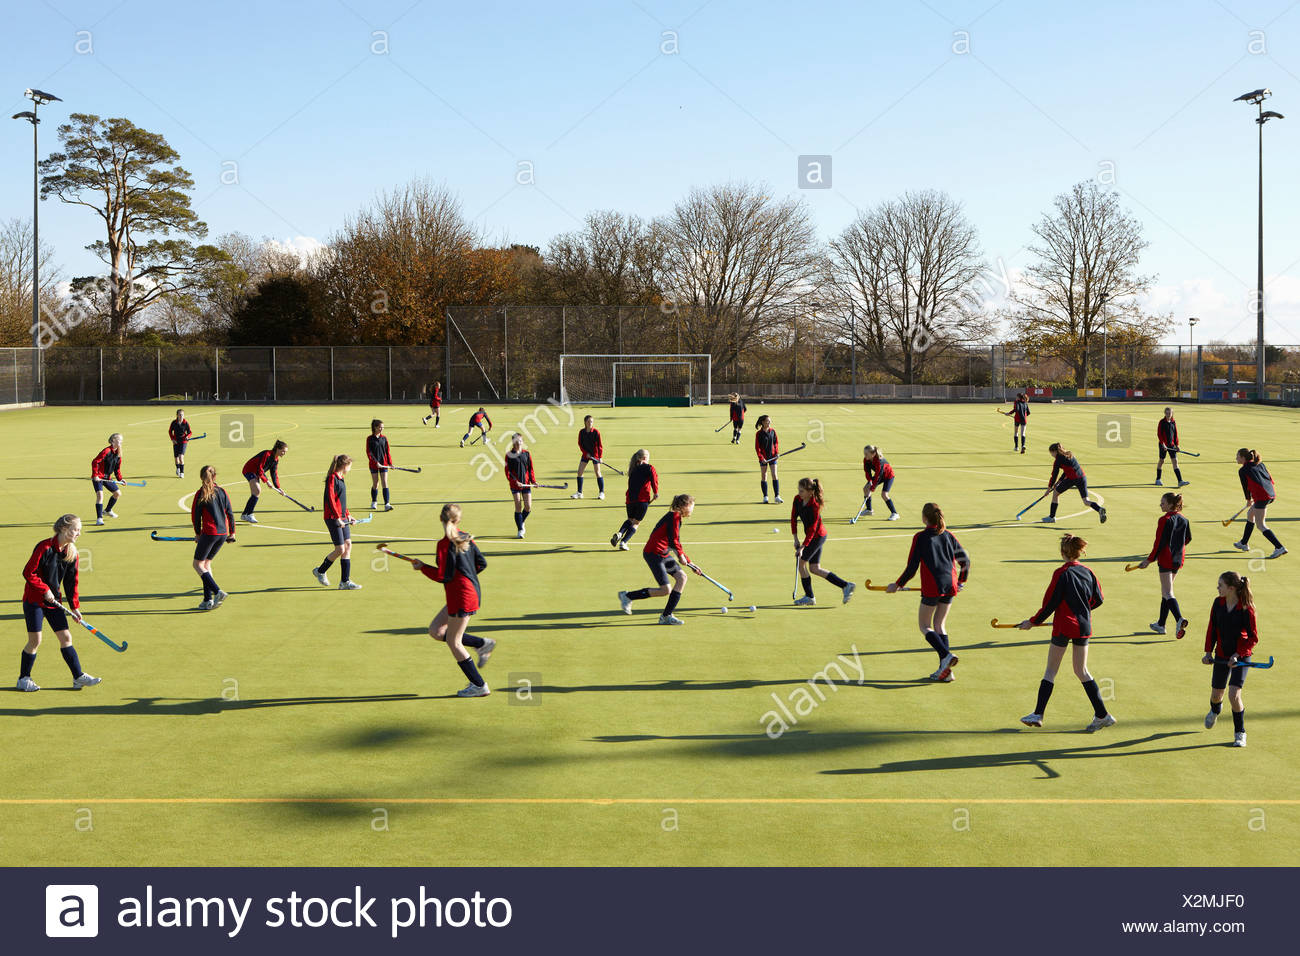 Lacrosse players in game on field Stock Photo